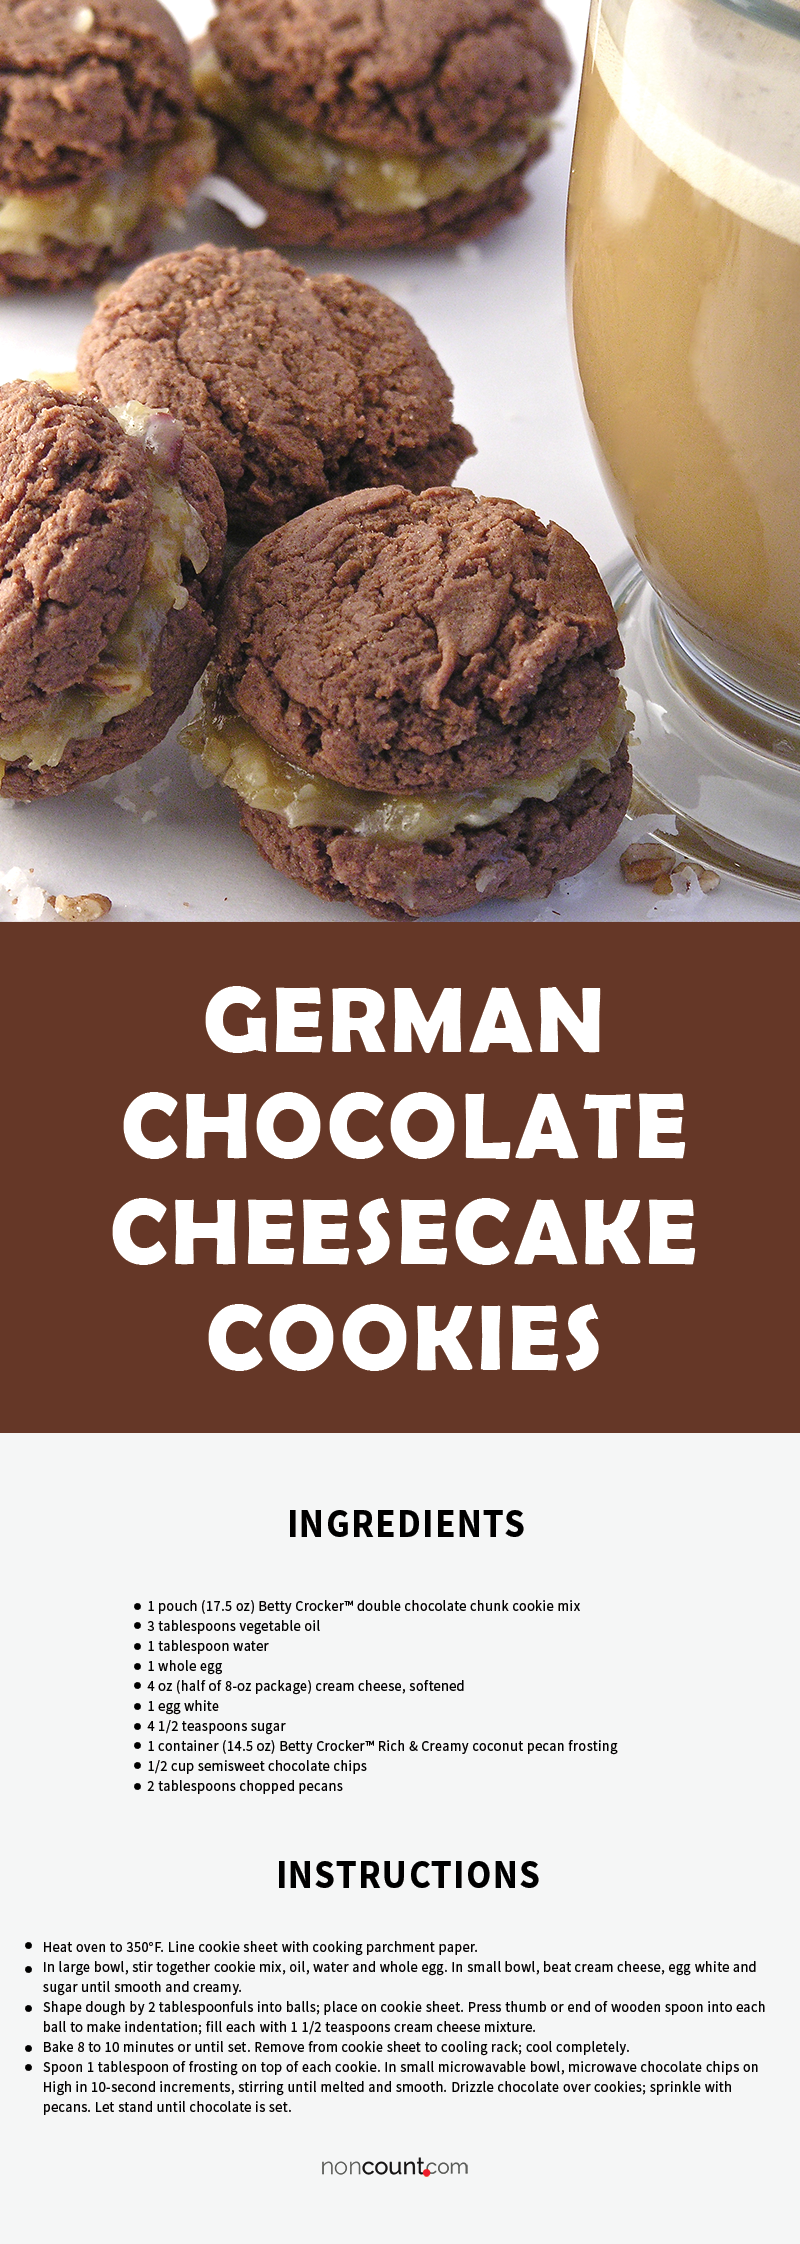 Recipe Image of German Chocolate Cheesecake Cookies